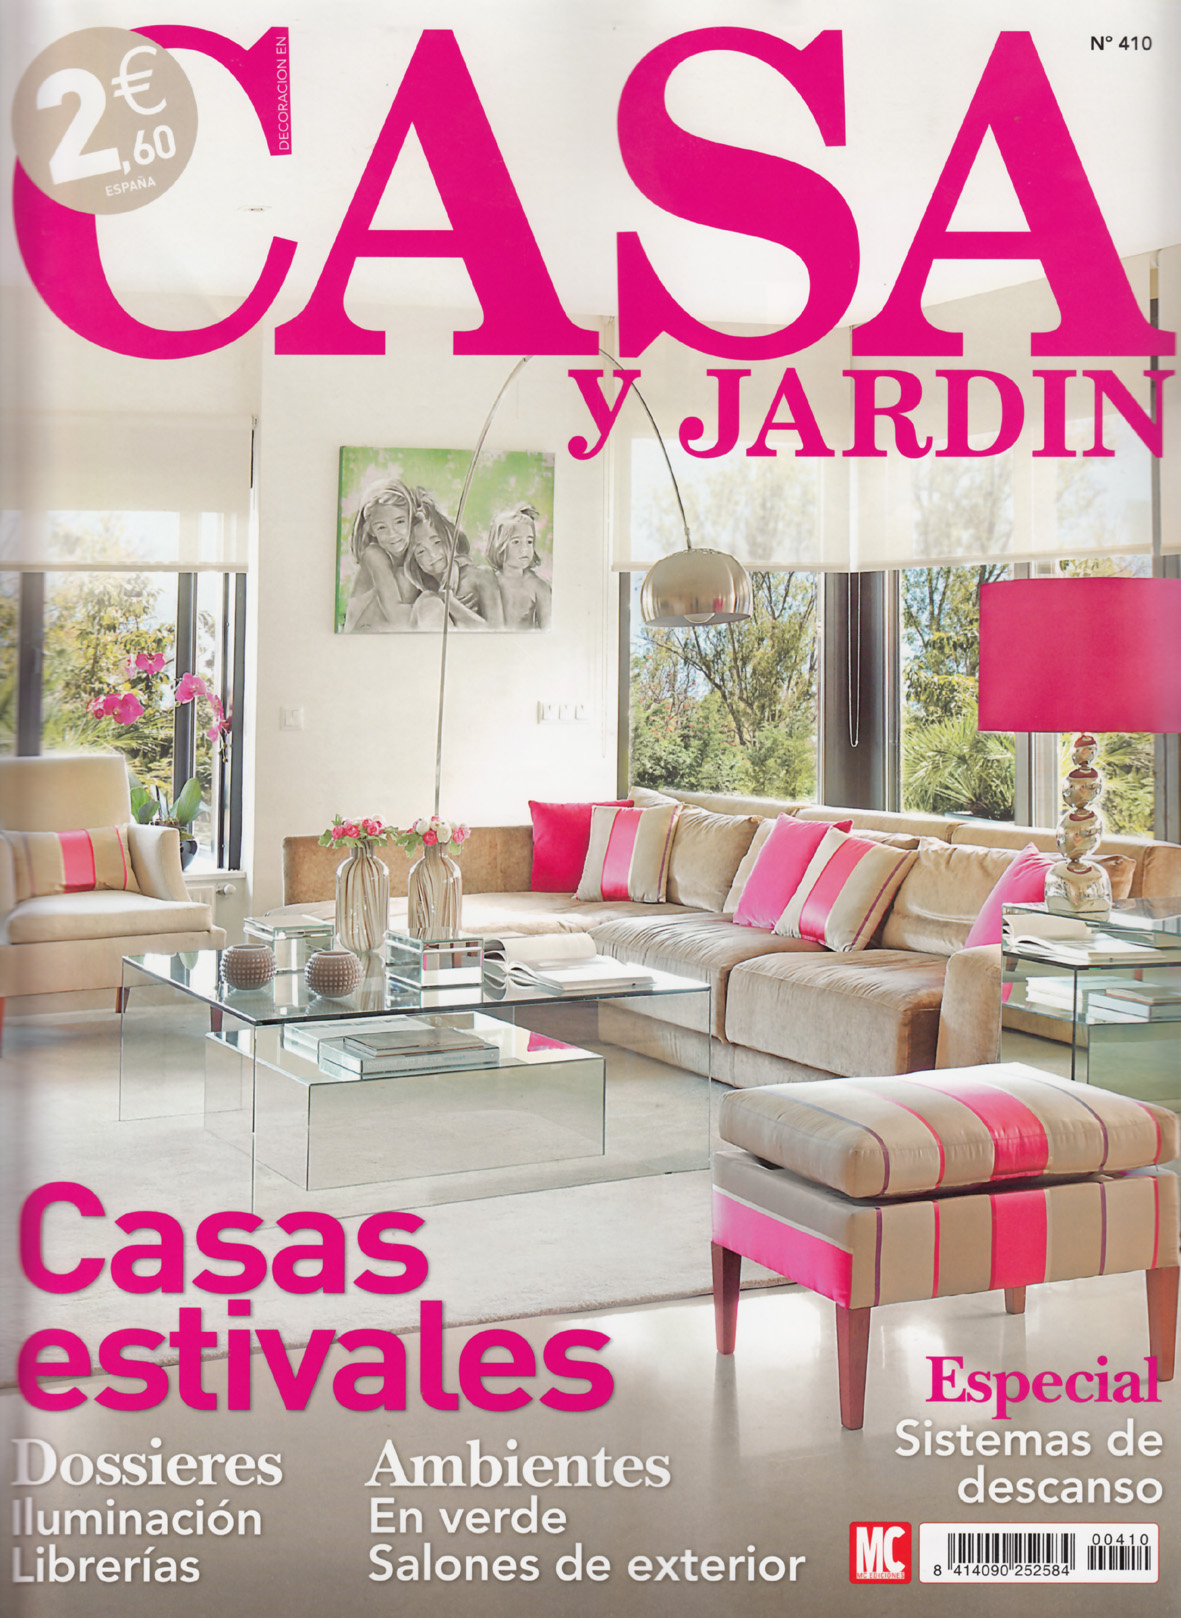 Campana extractora pando en la revista casa y jard n for Revista decoracion mi casa